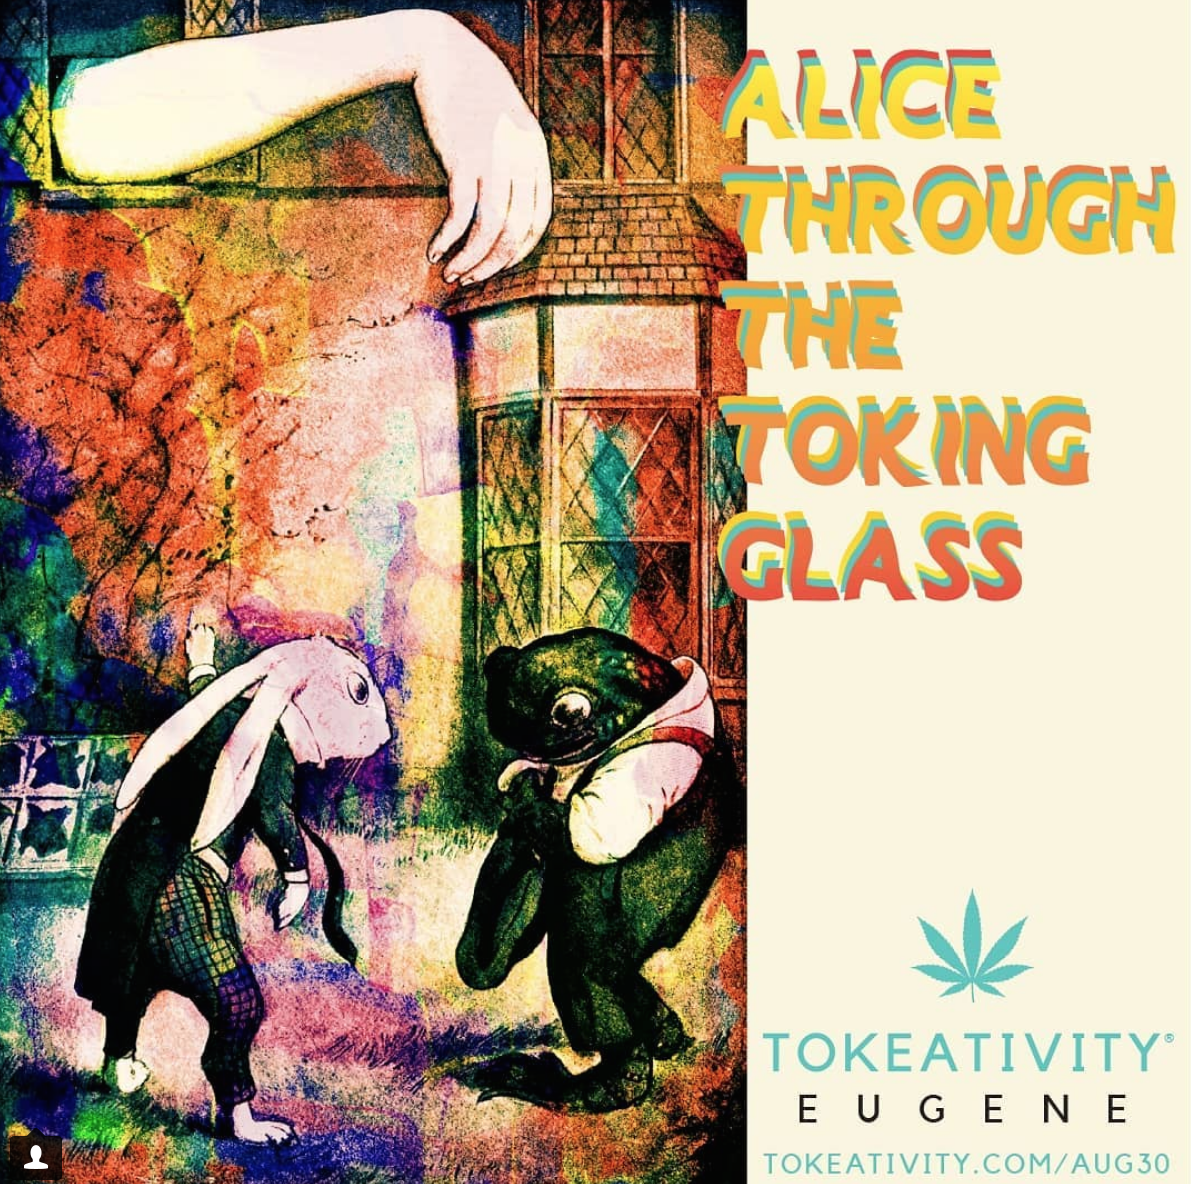 tokeativity-eugene-alice-through-the-toking-glass.png